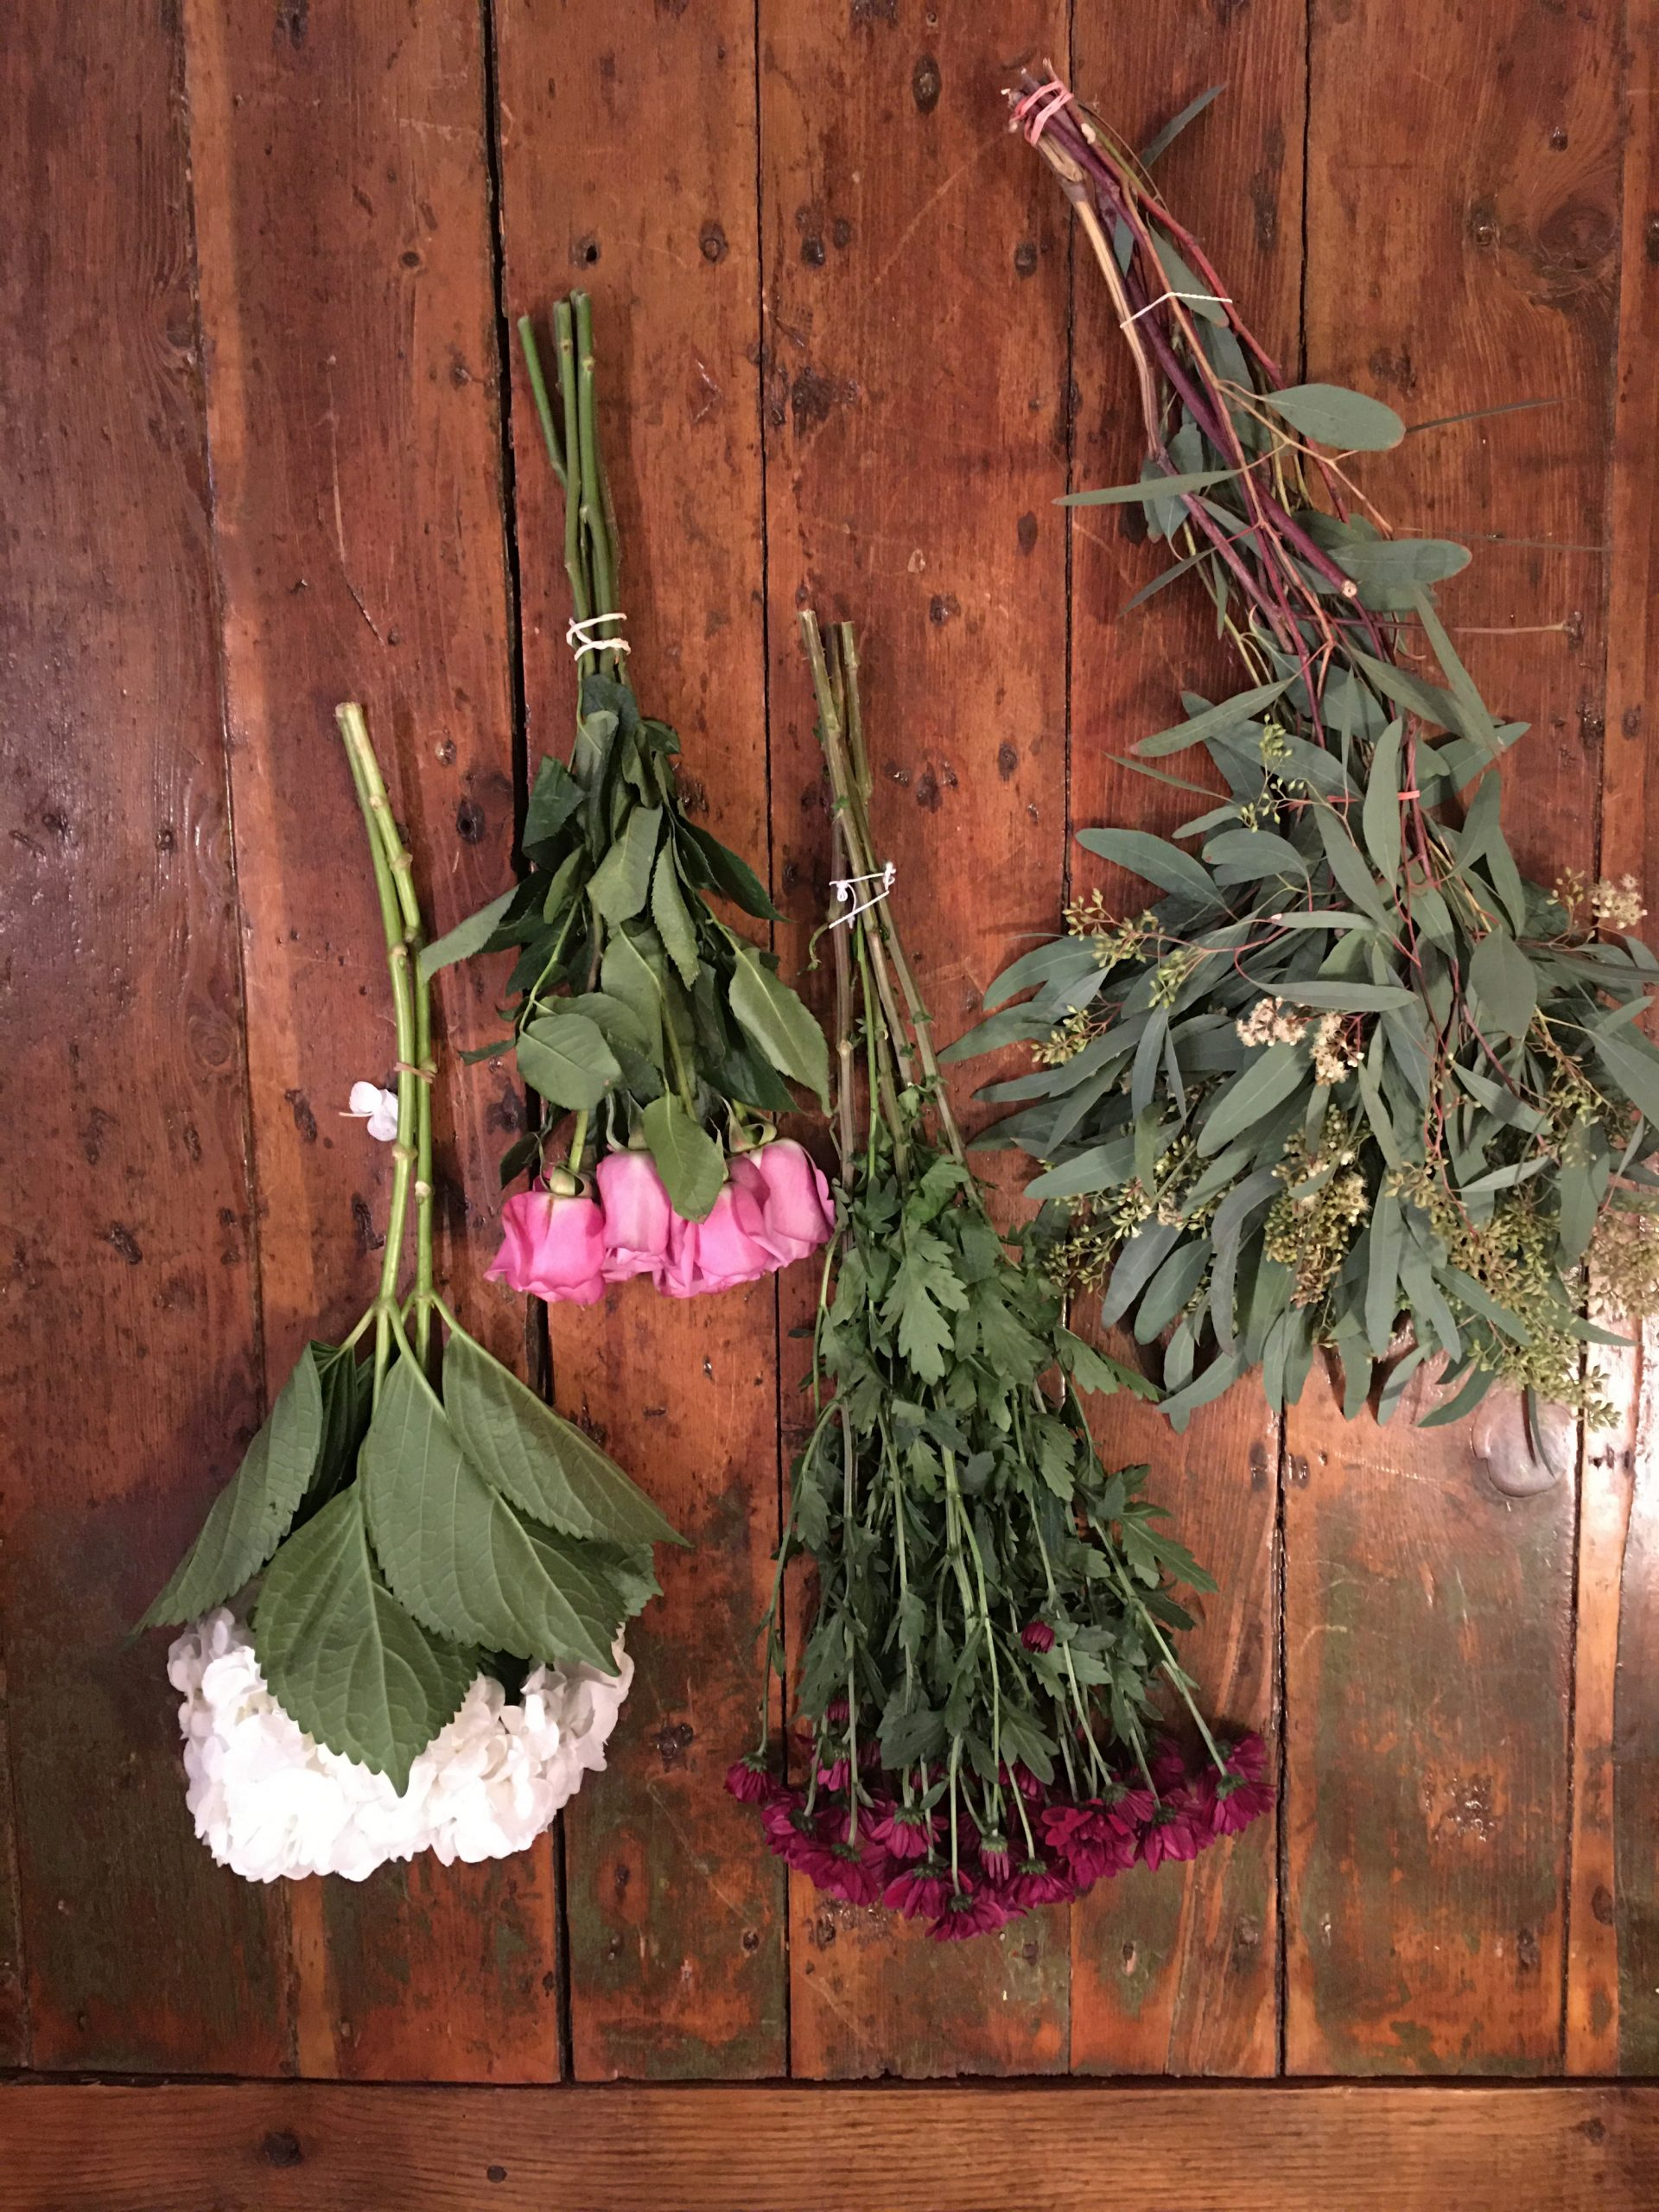 Selecting flowers to arrange - The Bungalow edit